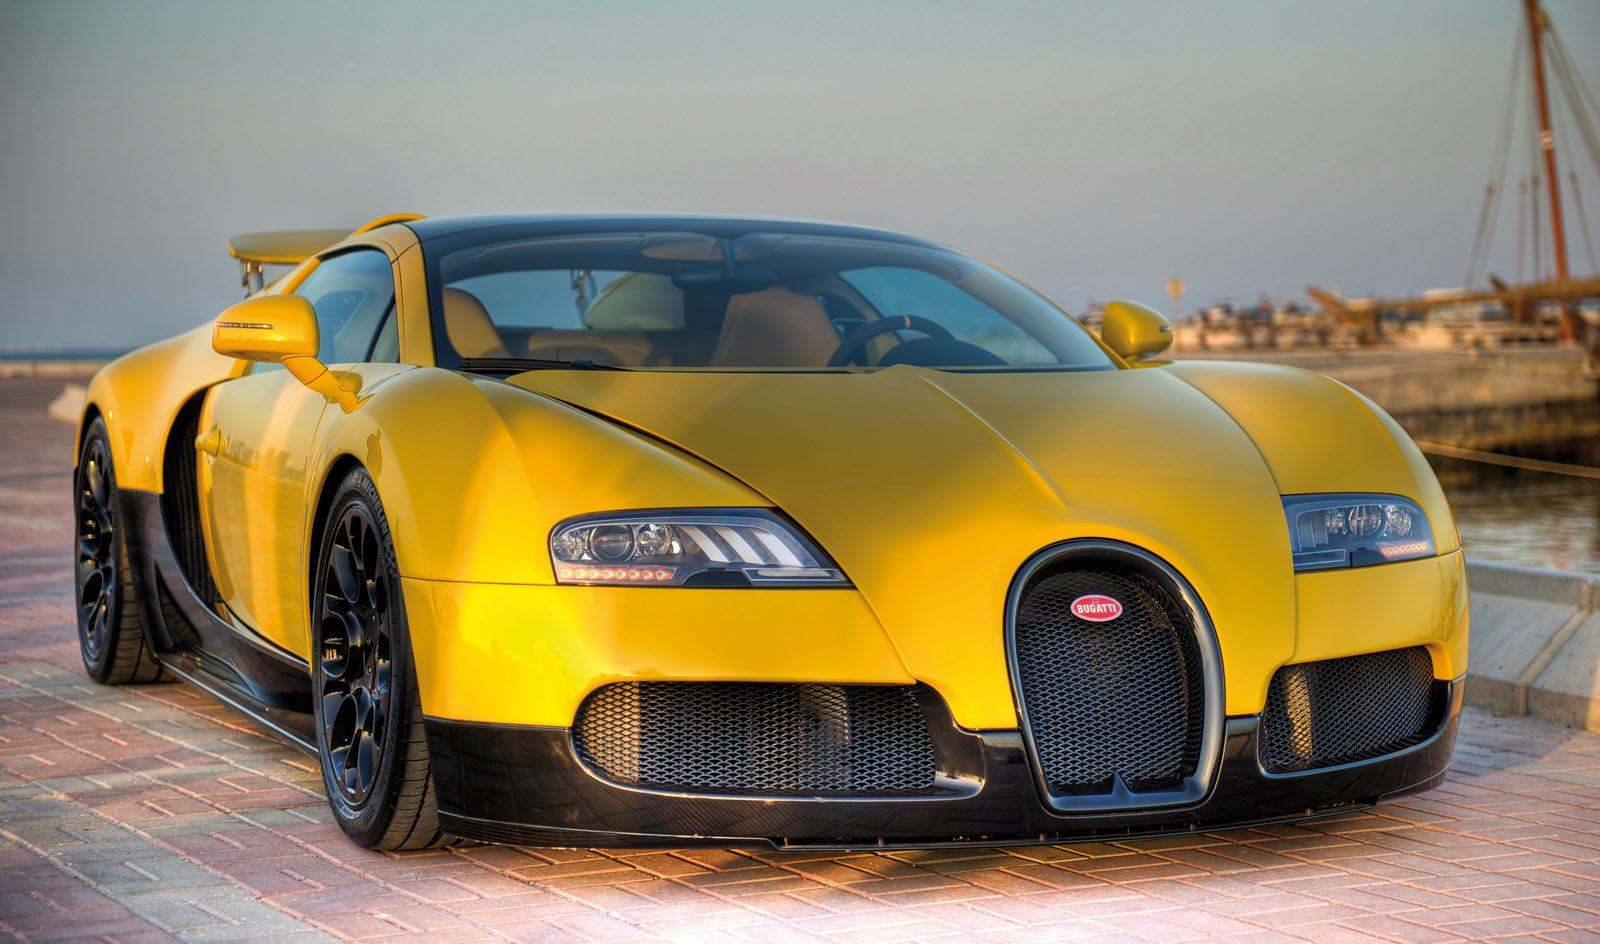 2012 Bugatti Veyron Grand Sport 1 2012 Bugatti Veyron Grand Sport Famous for Double Toned Body and Innovative Design